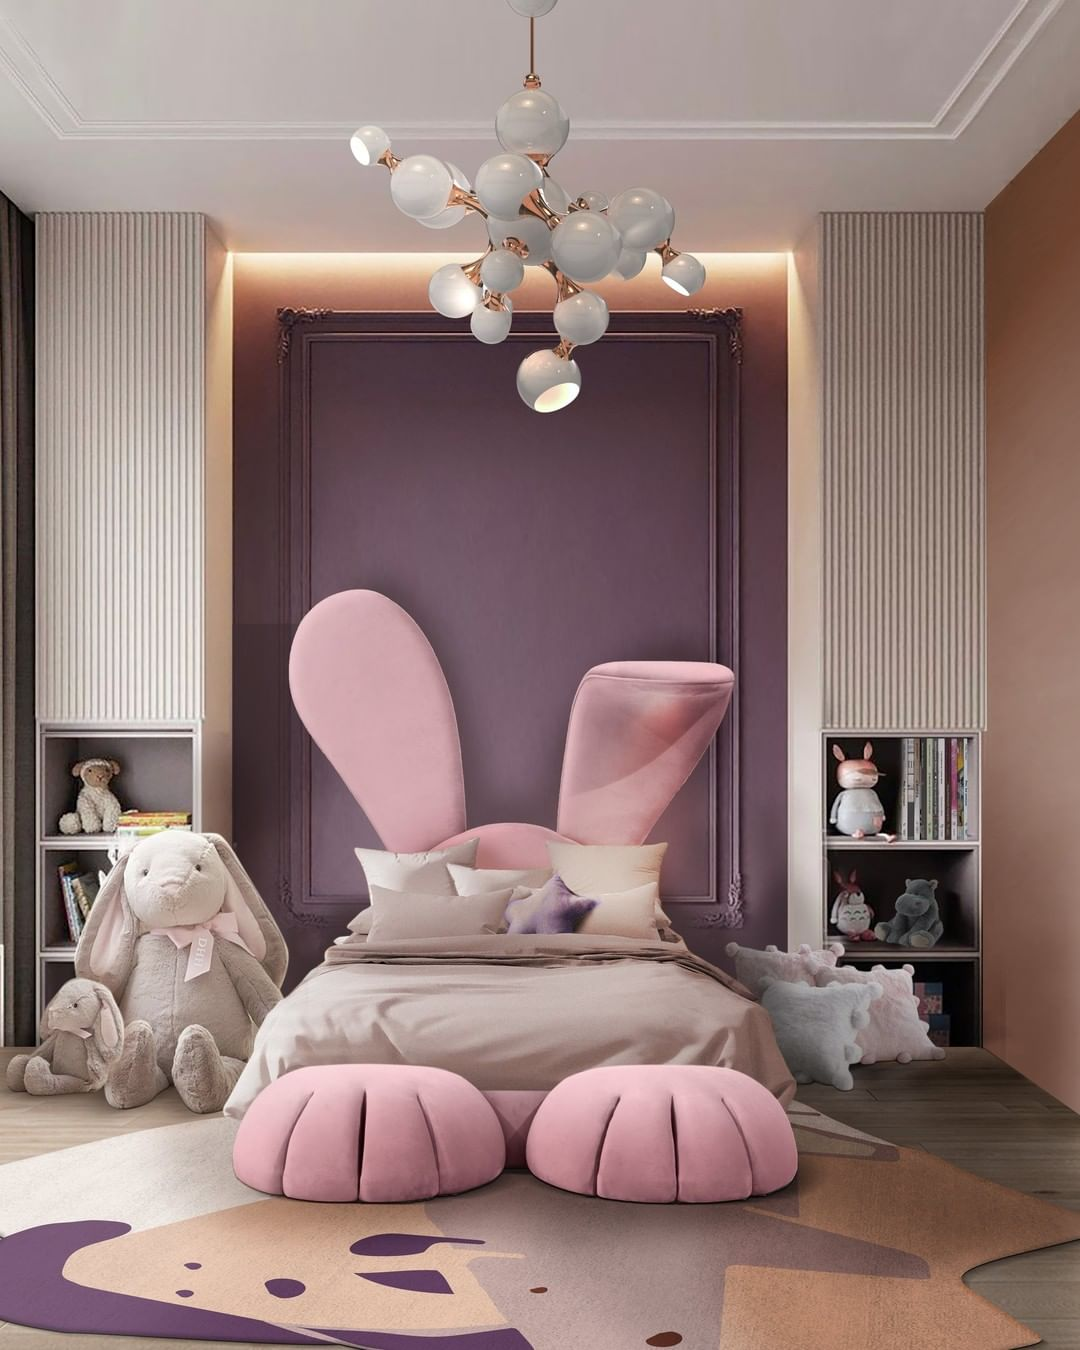 Searching for inspiration? Find Here The Most CovetED Bedroom Inspirations